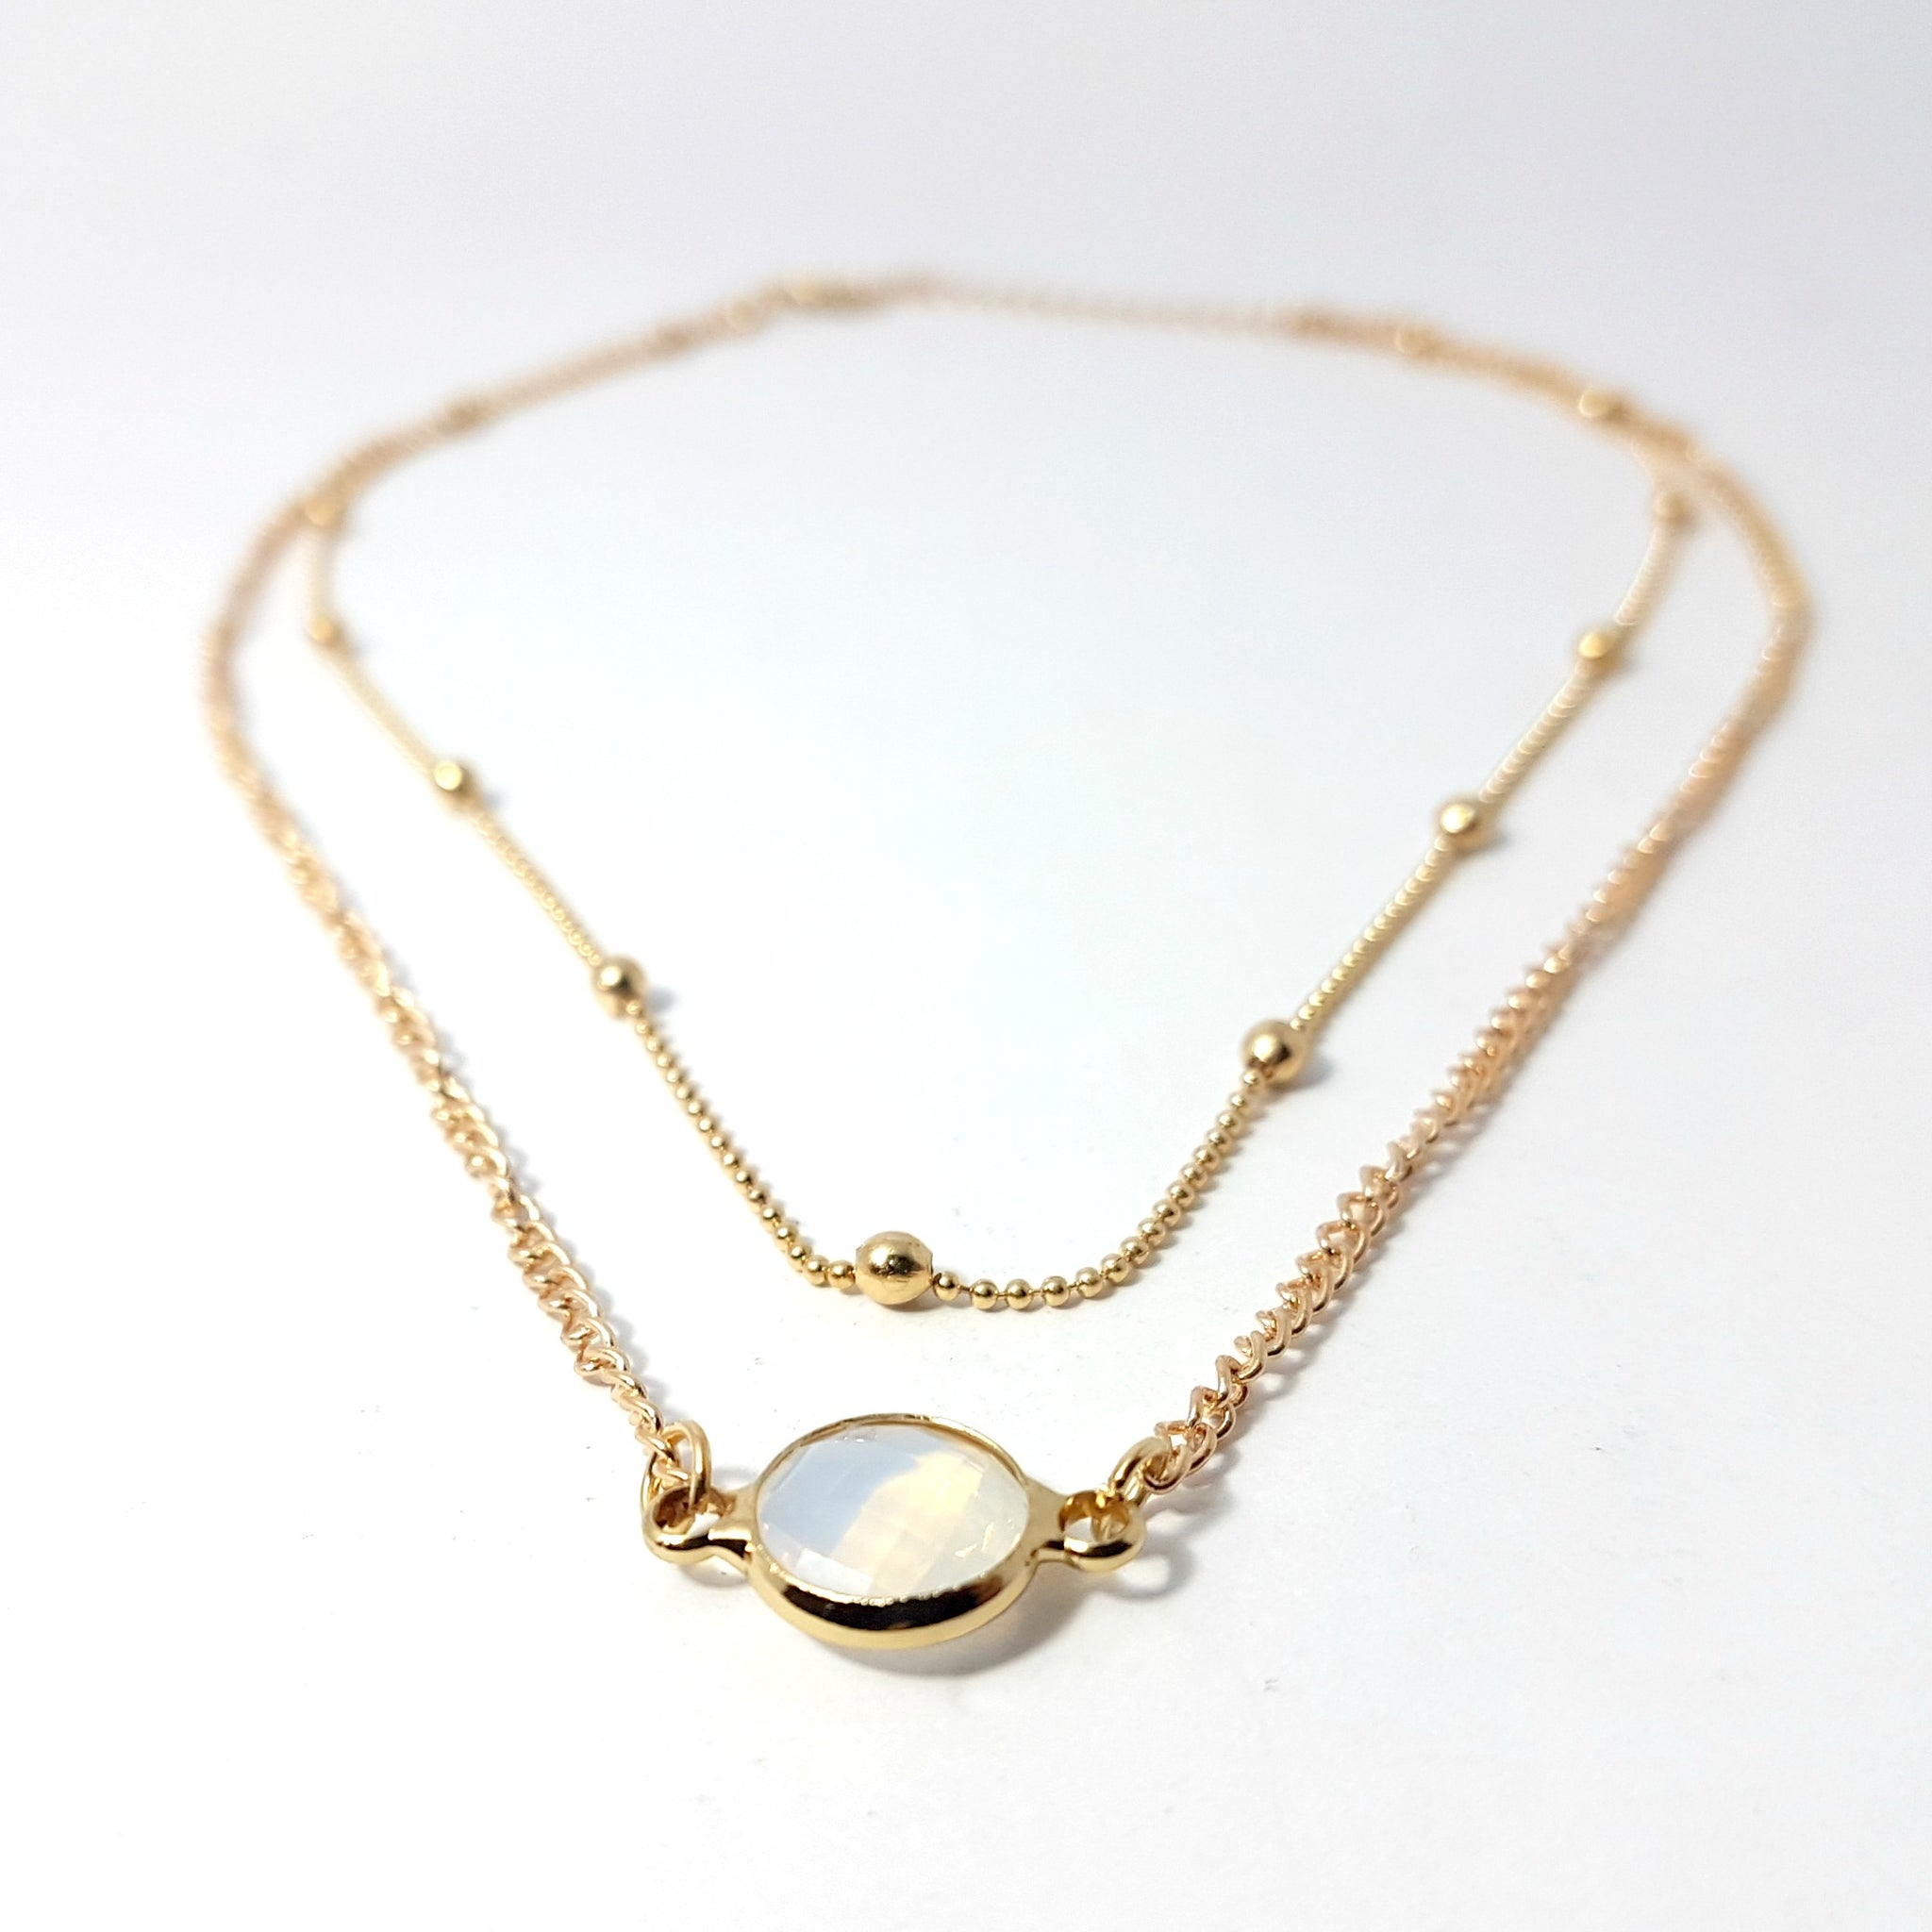 necklaces s necklace c bp women nordstrom tier